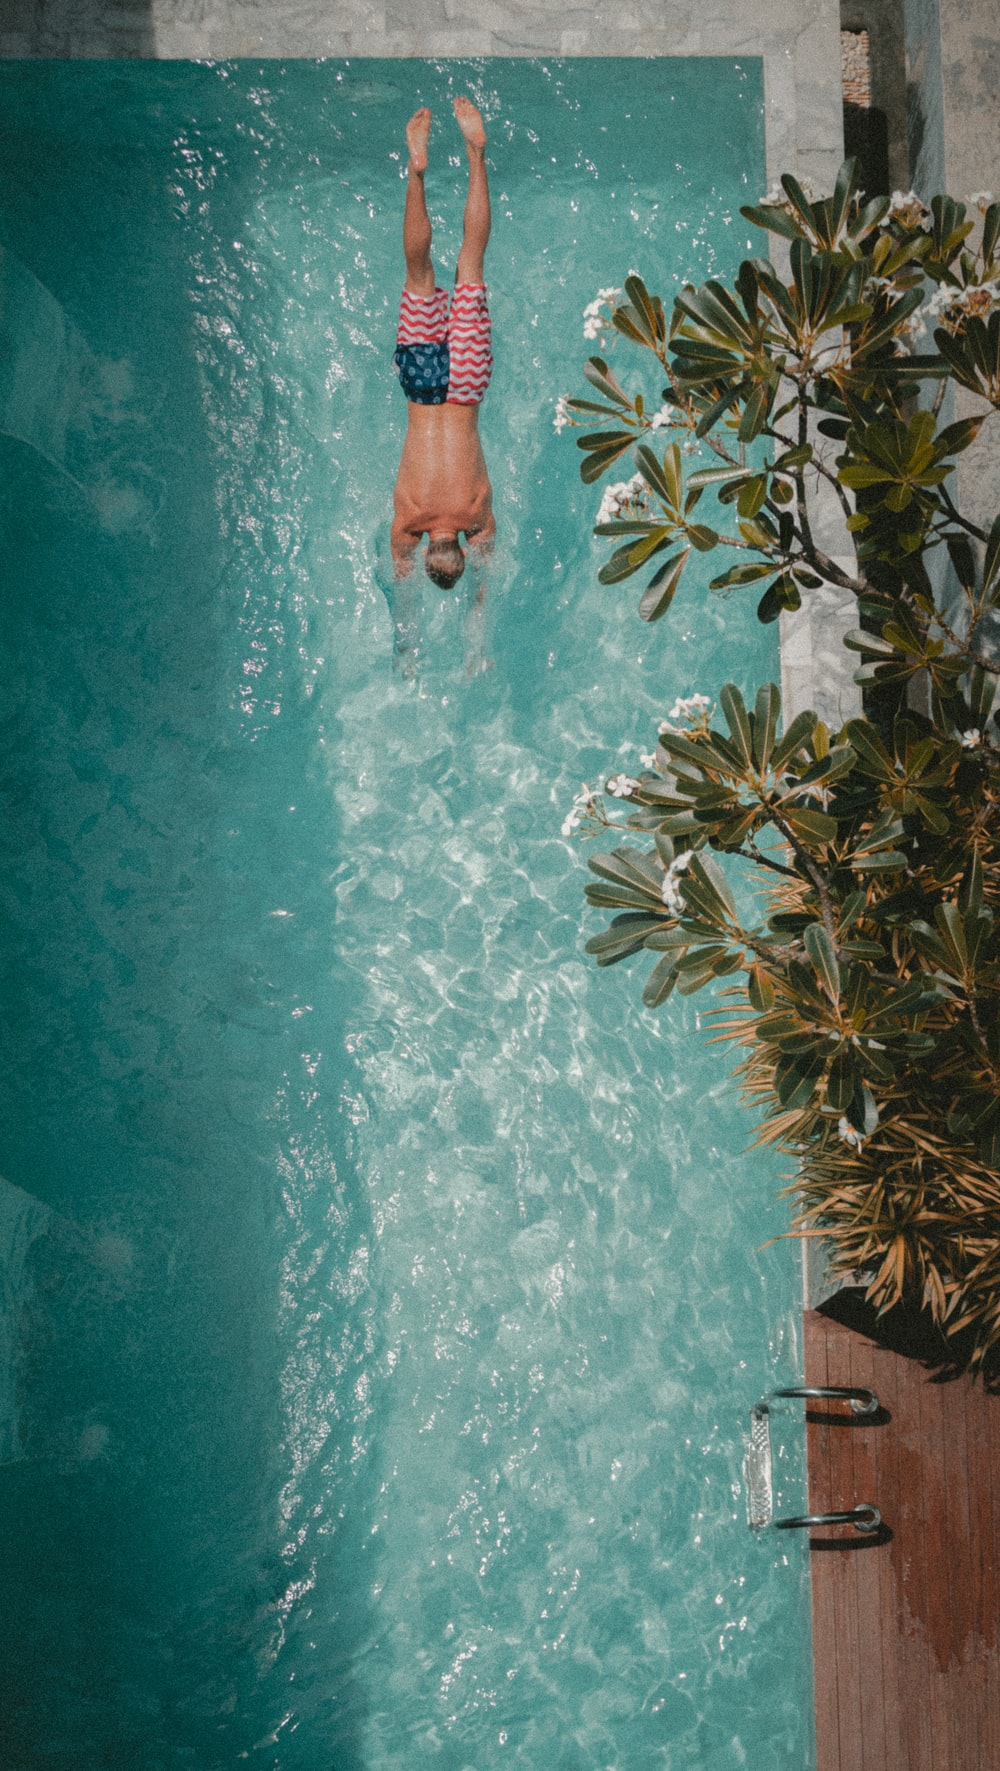 high angle photography of man diving towards the pool